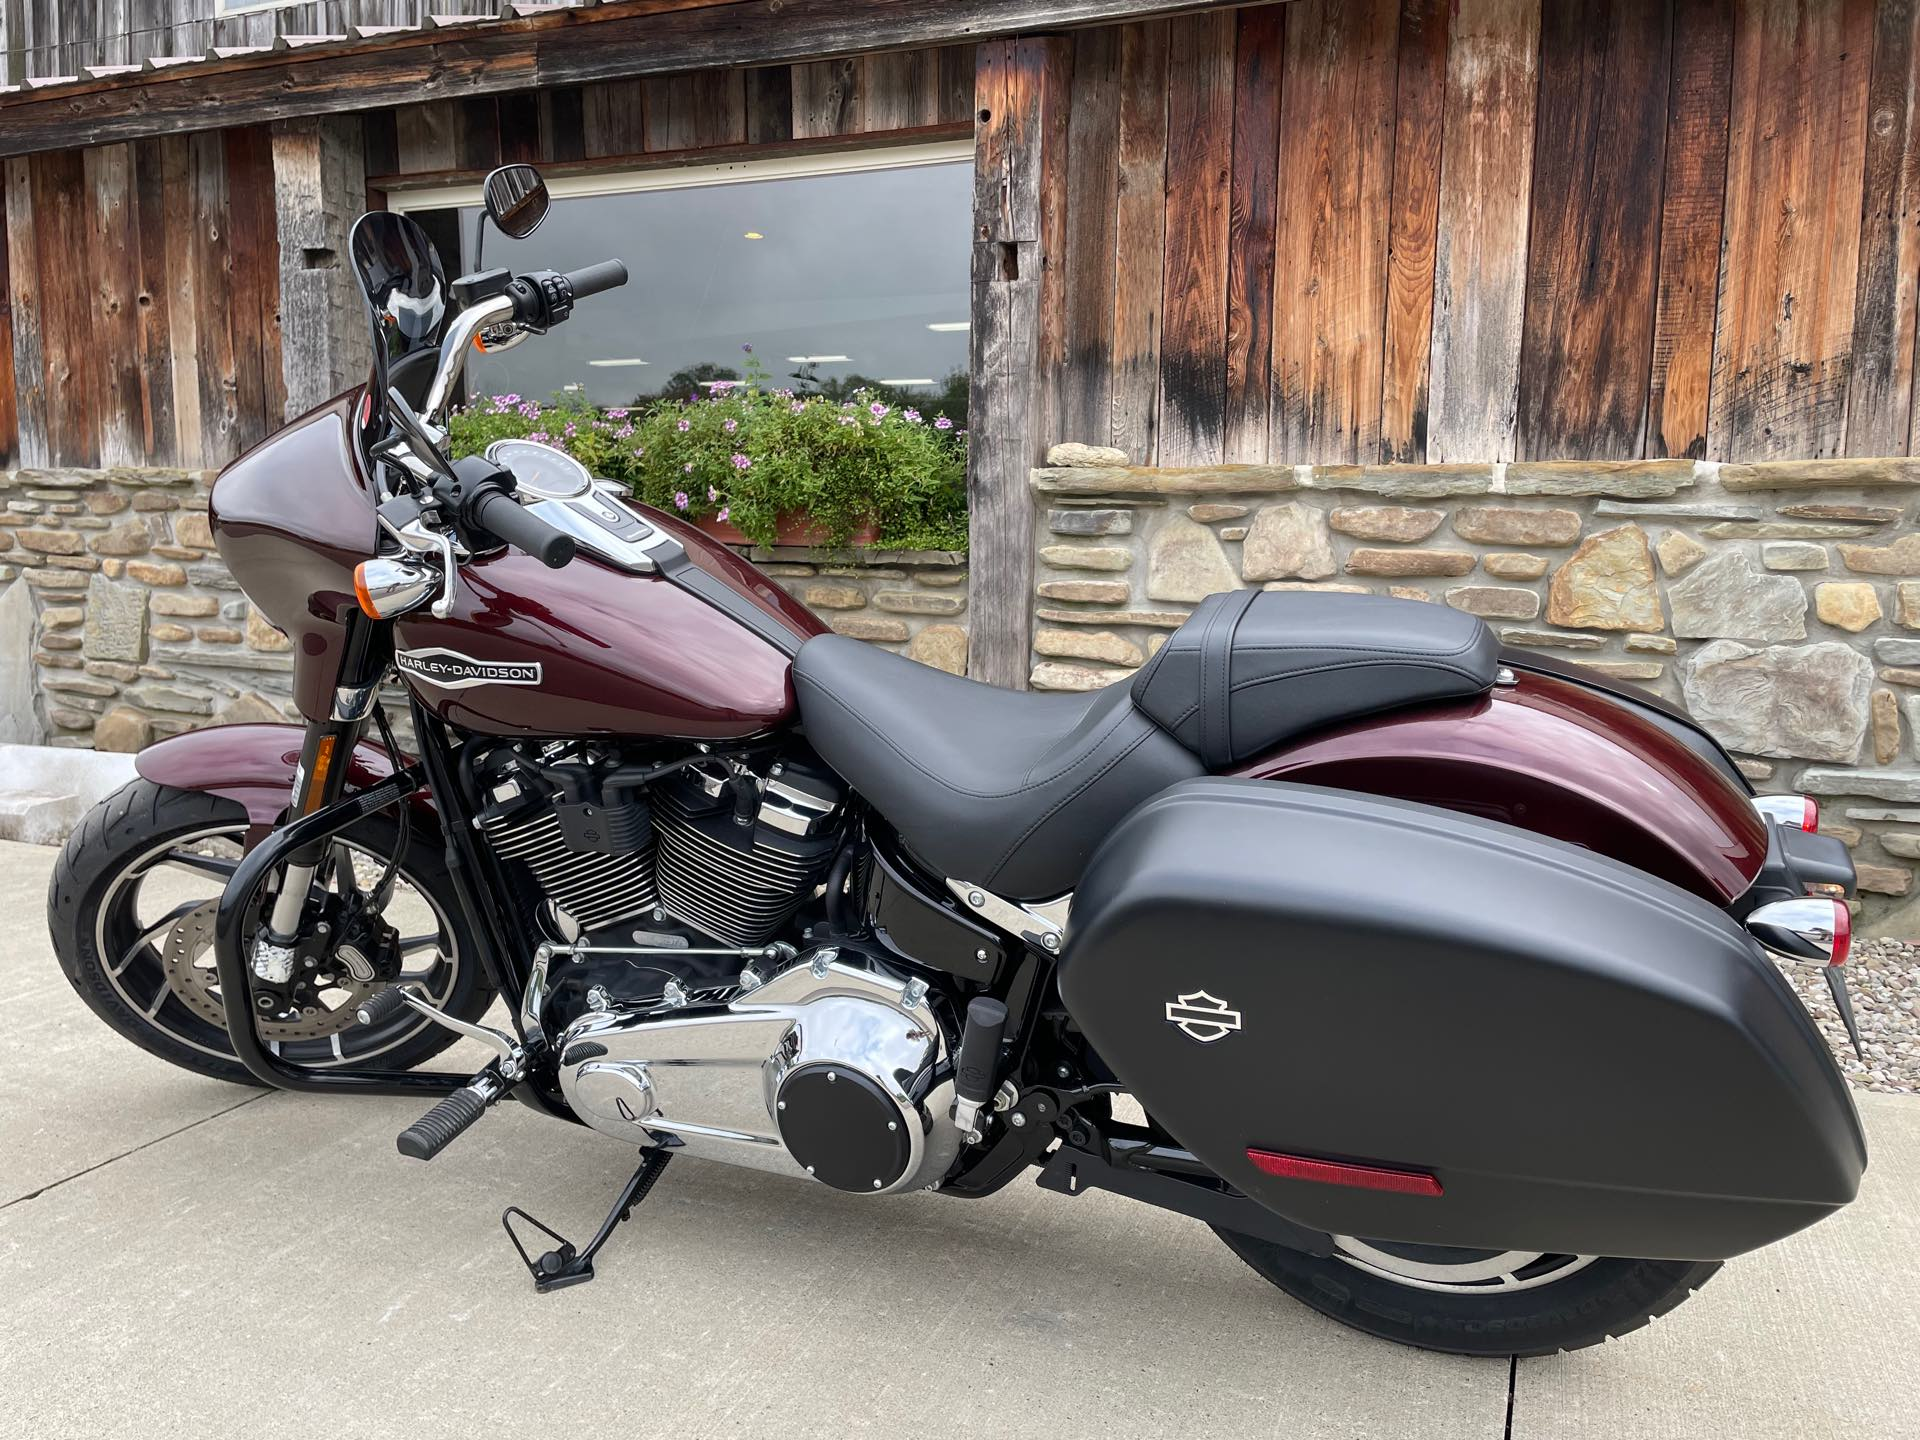 2018 Harley-Davidson Softail Sport Glide at Arkport Cycles